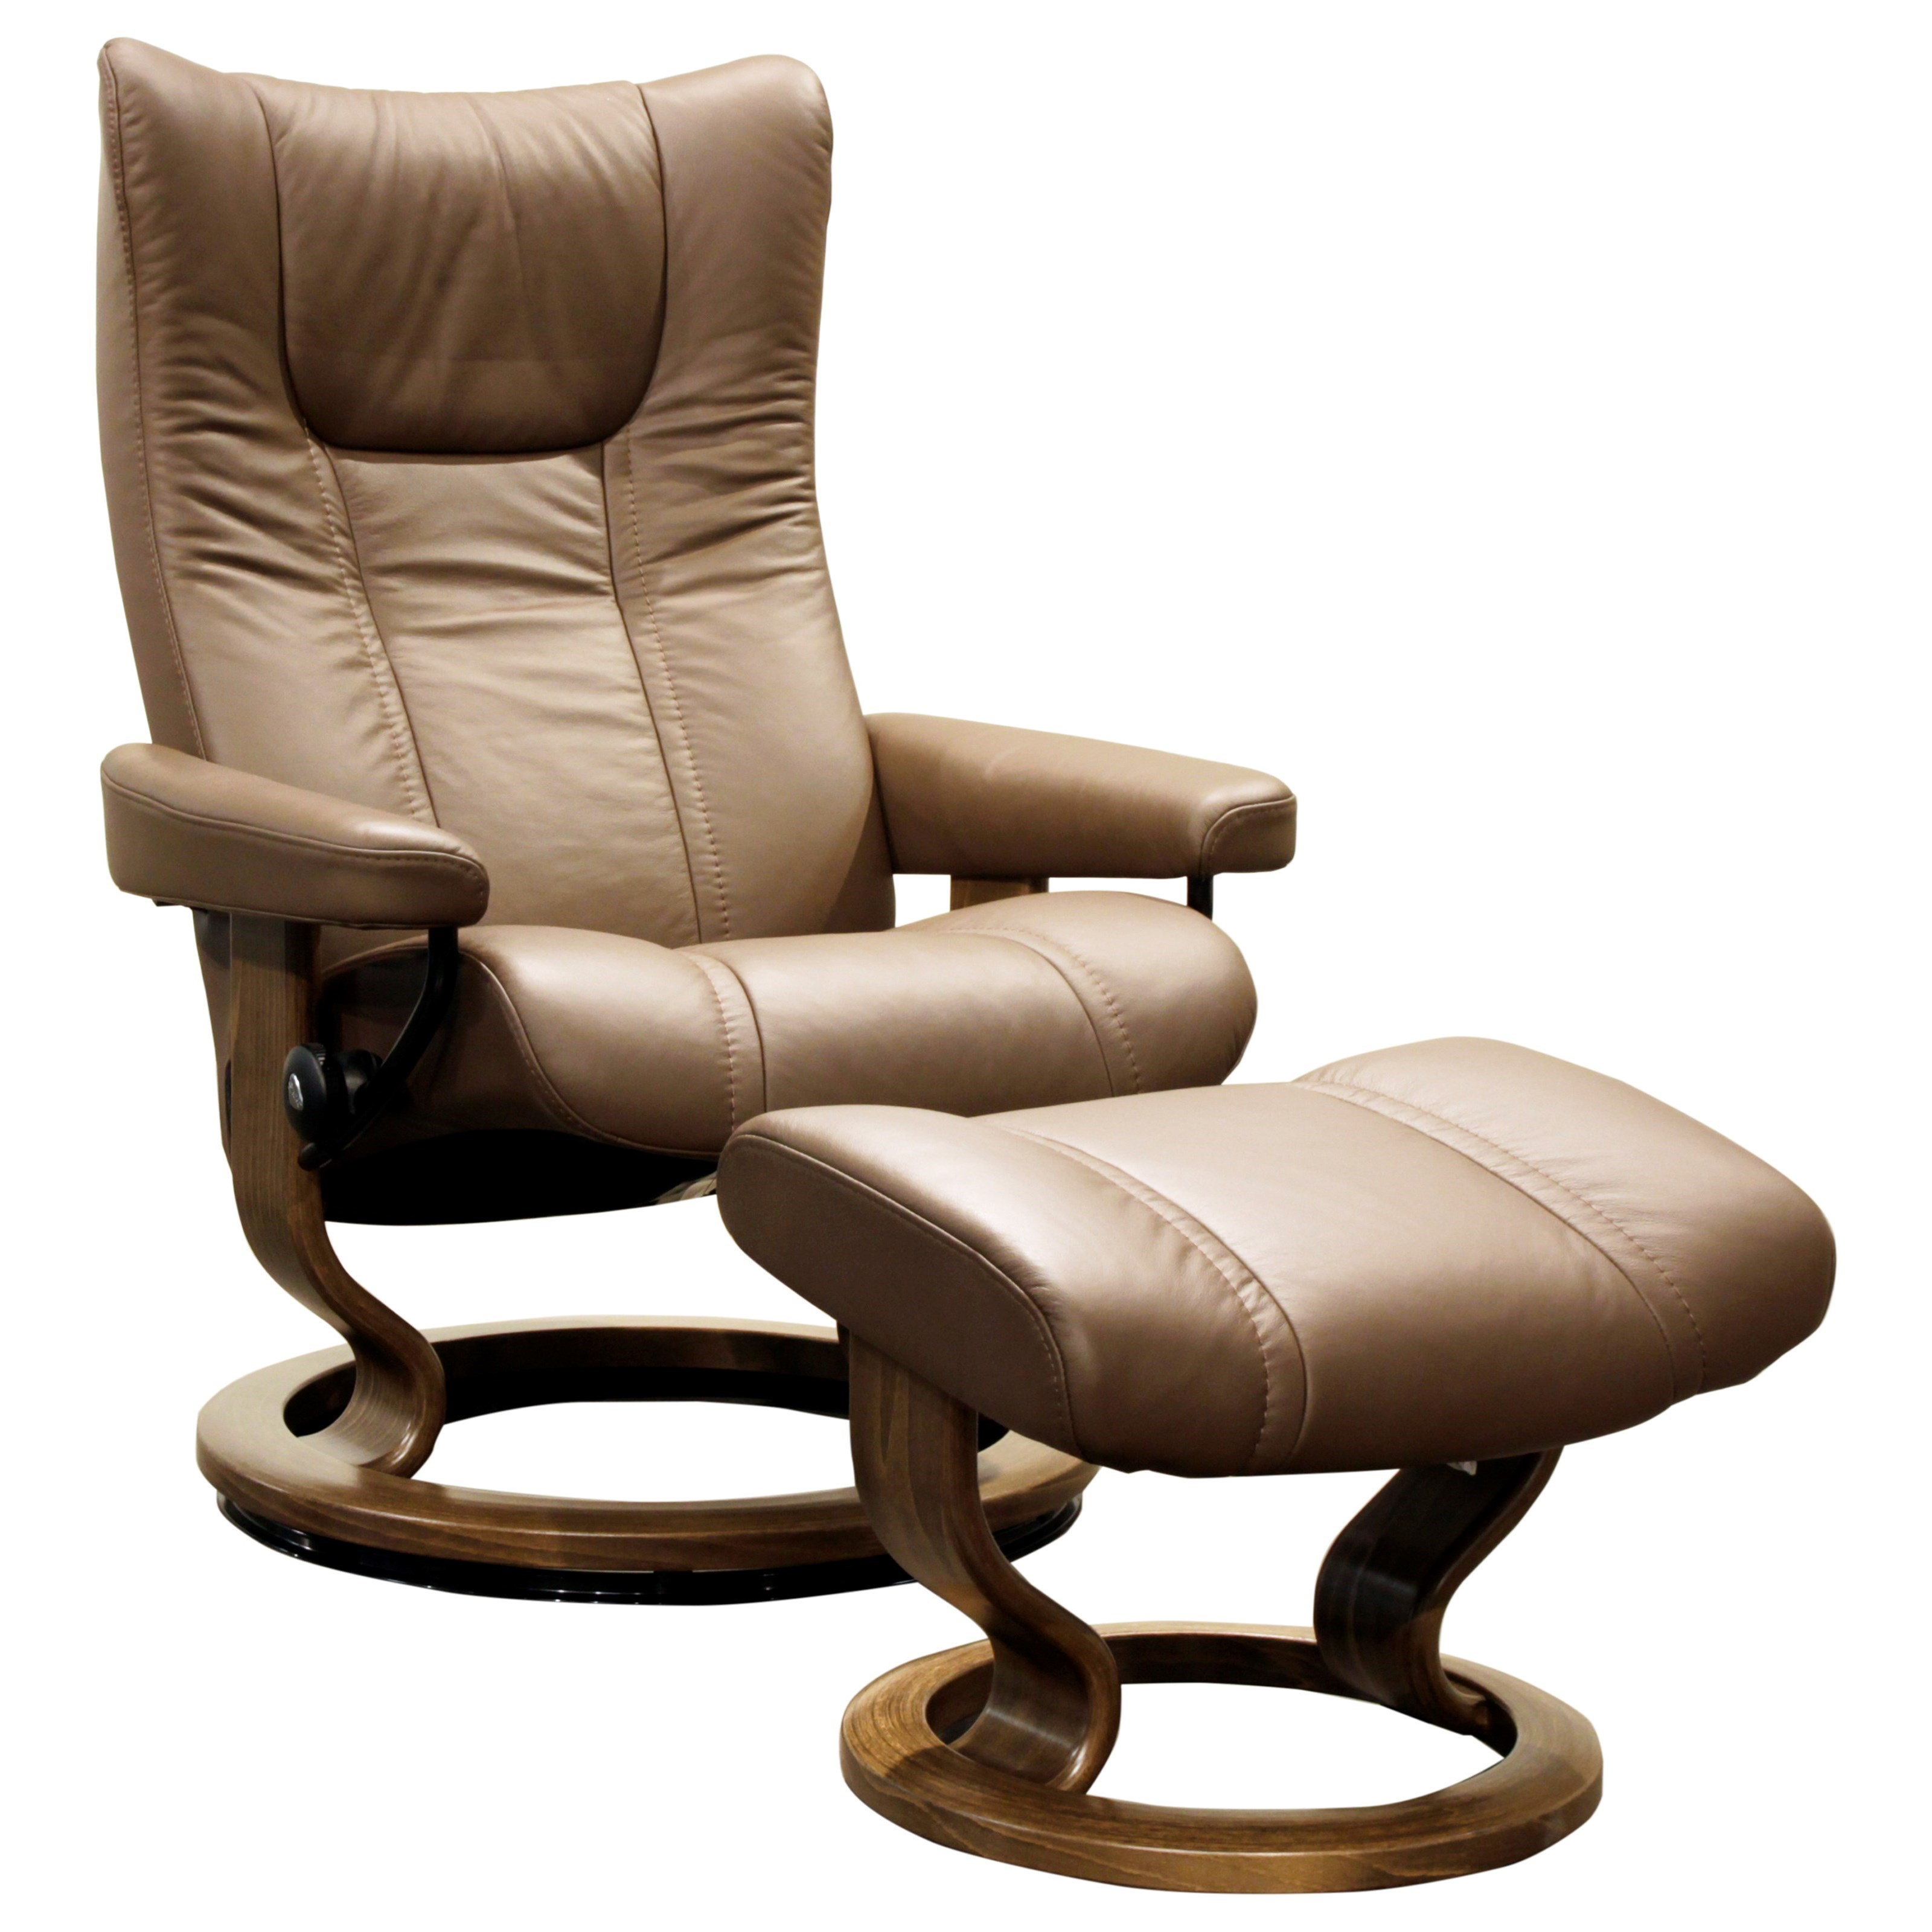 Stressless Wing Classic Legcomfort Stressless Wing Medium Reclining Chair And Ottoman With